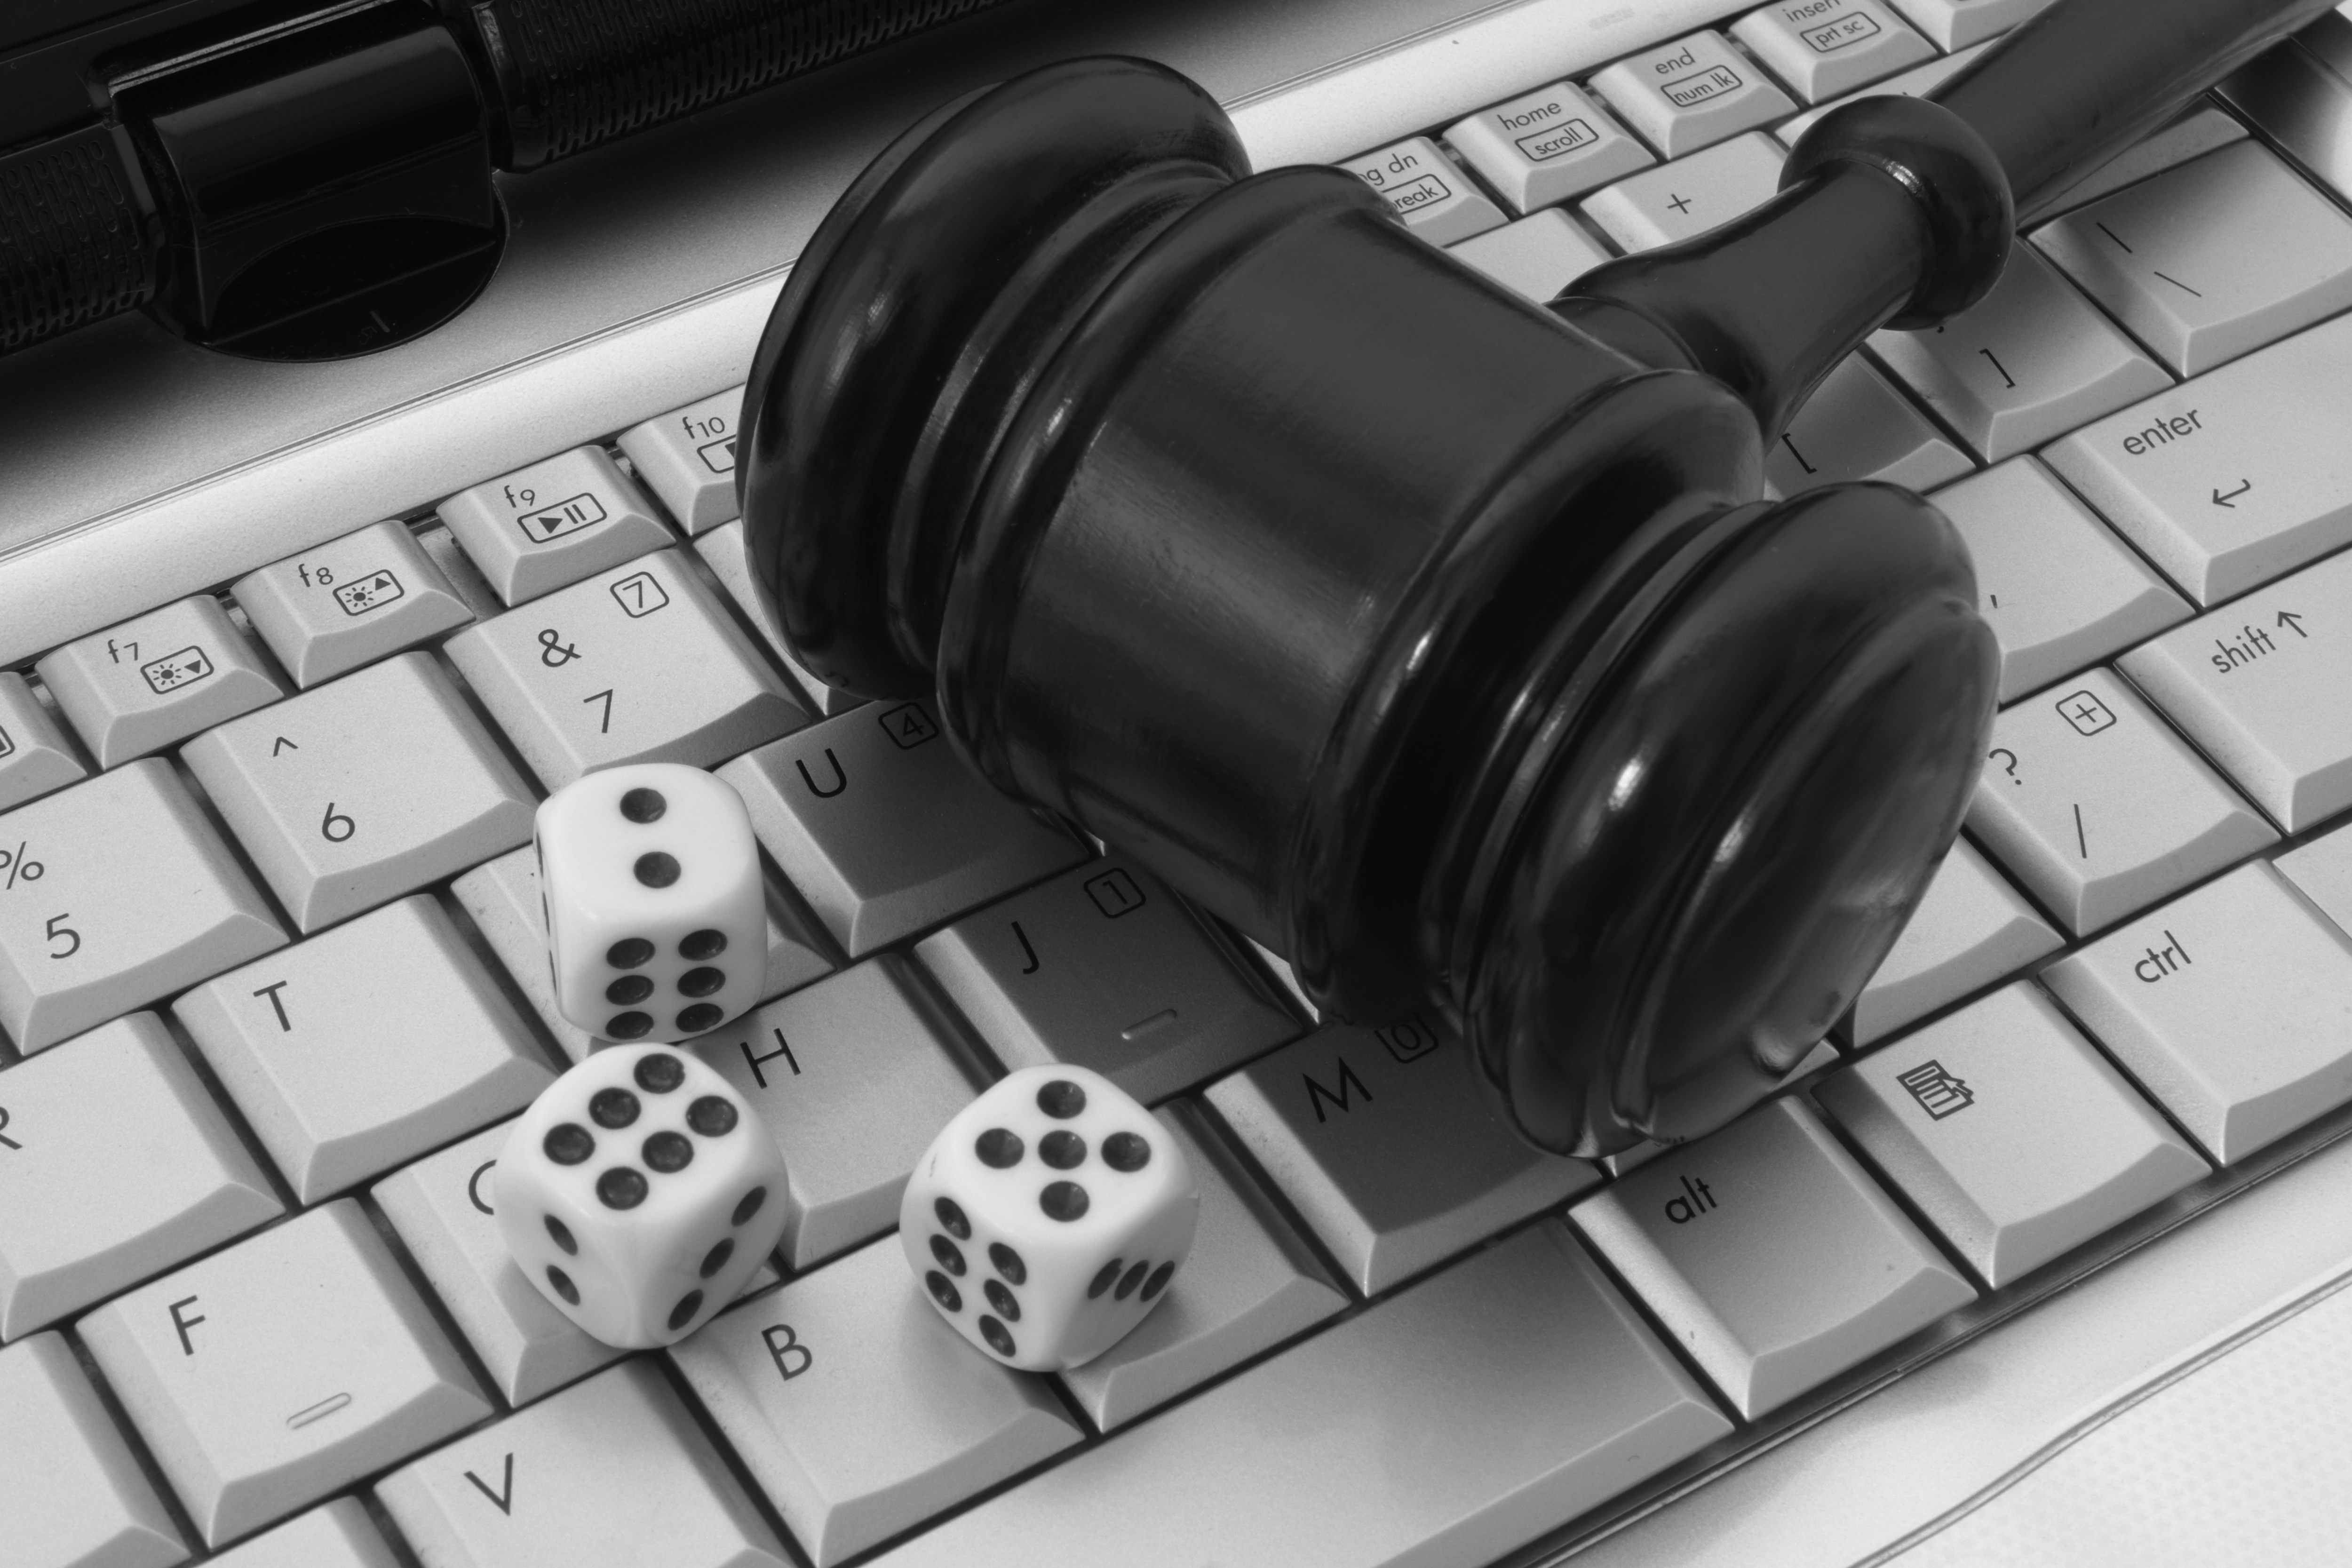 Online casino regulations